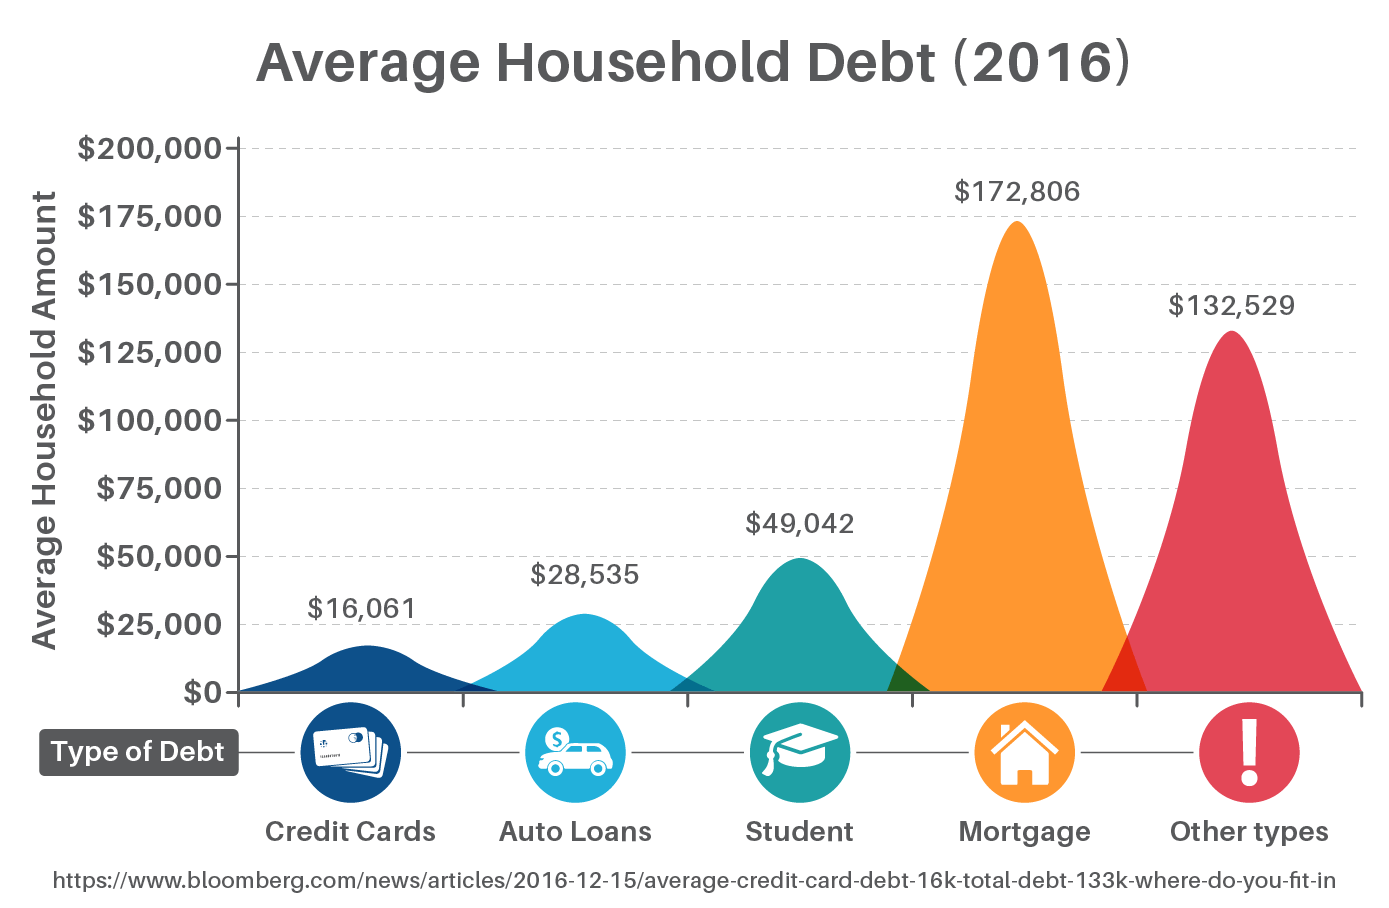 Average Household Debt (2016)